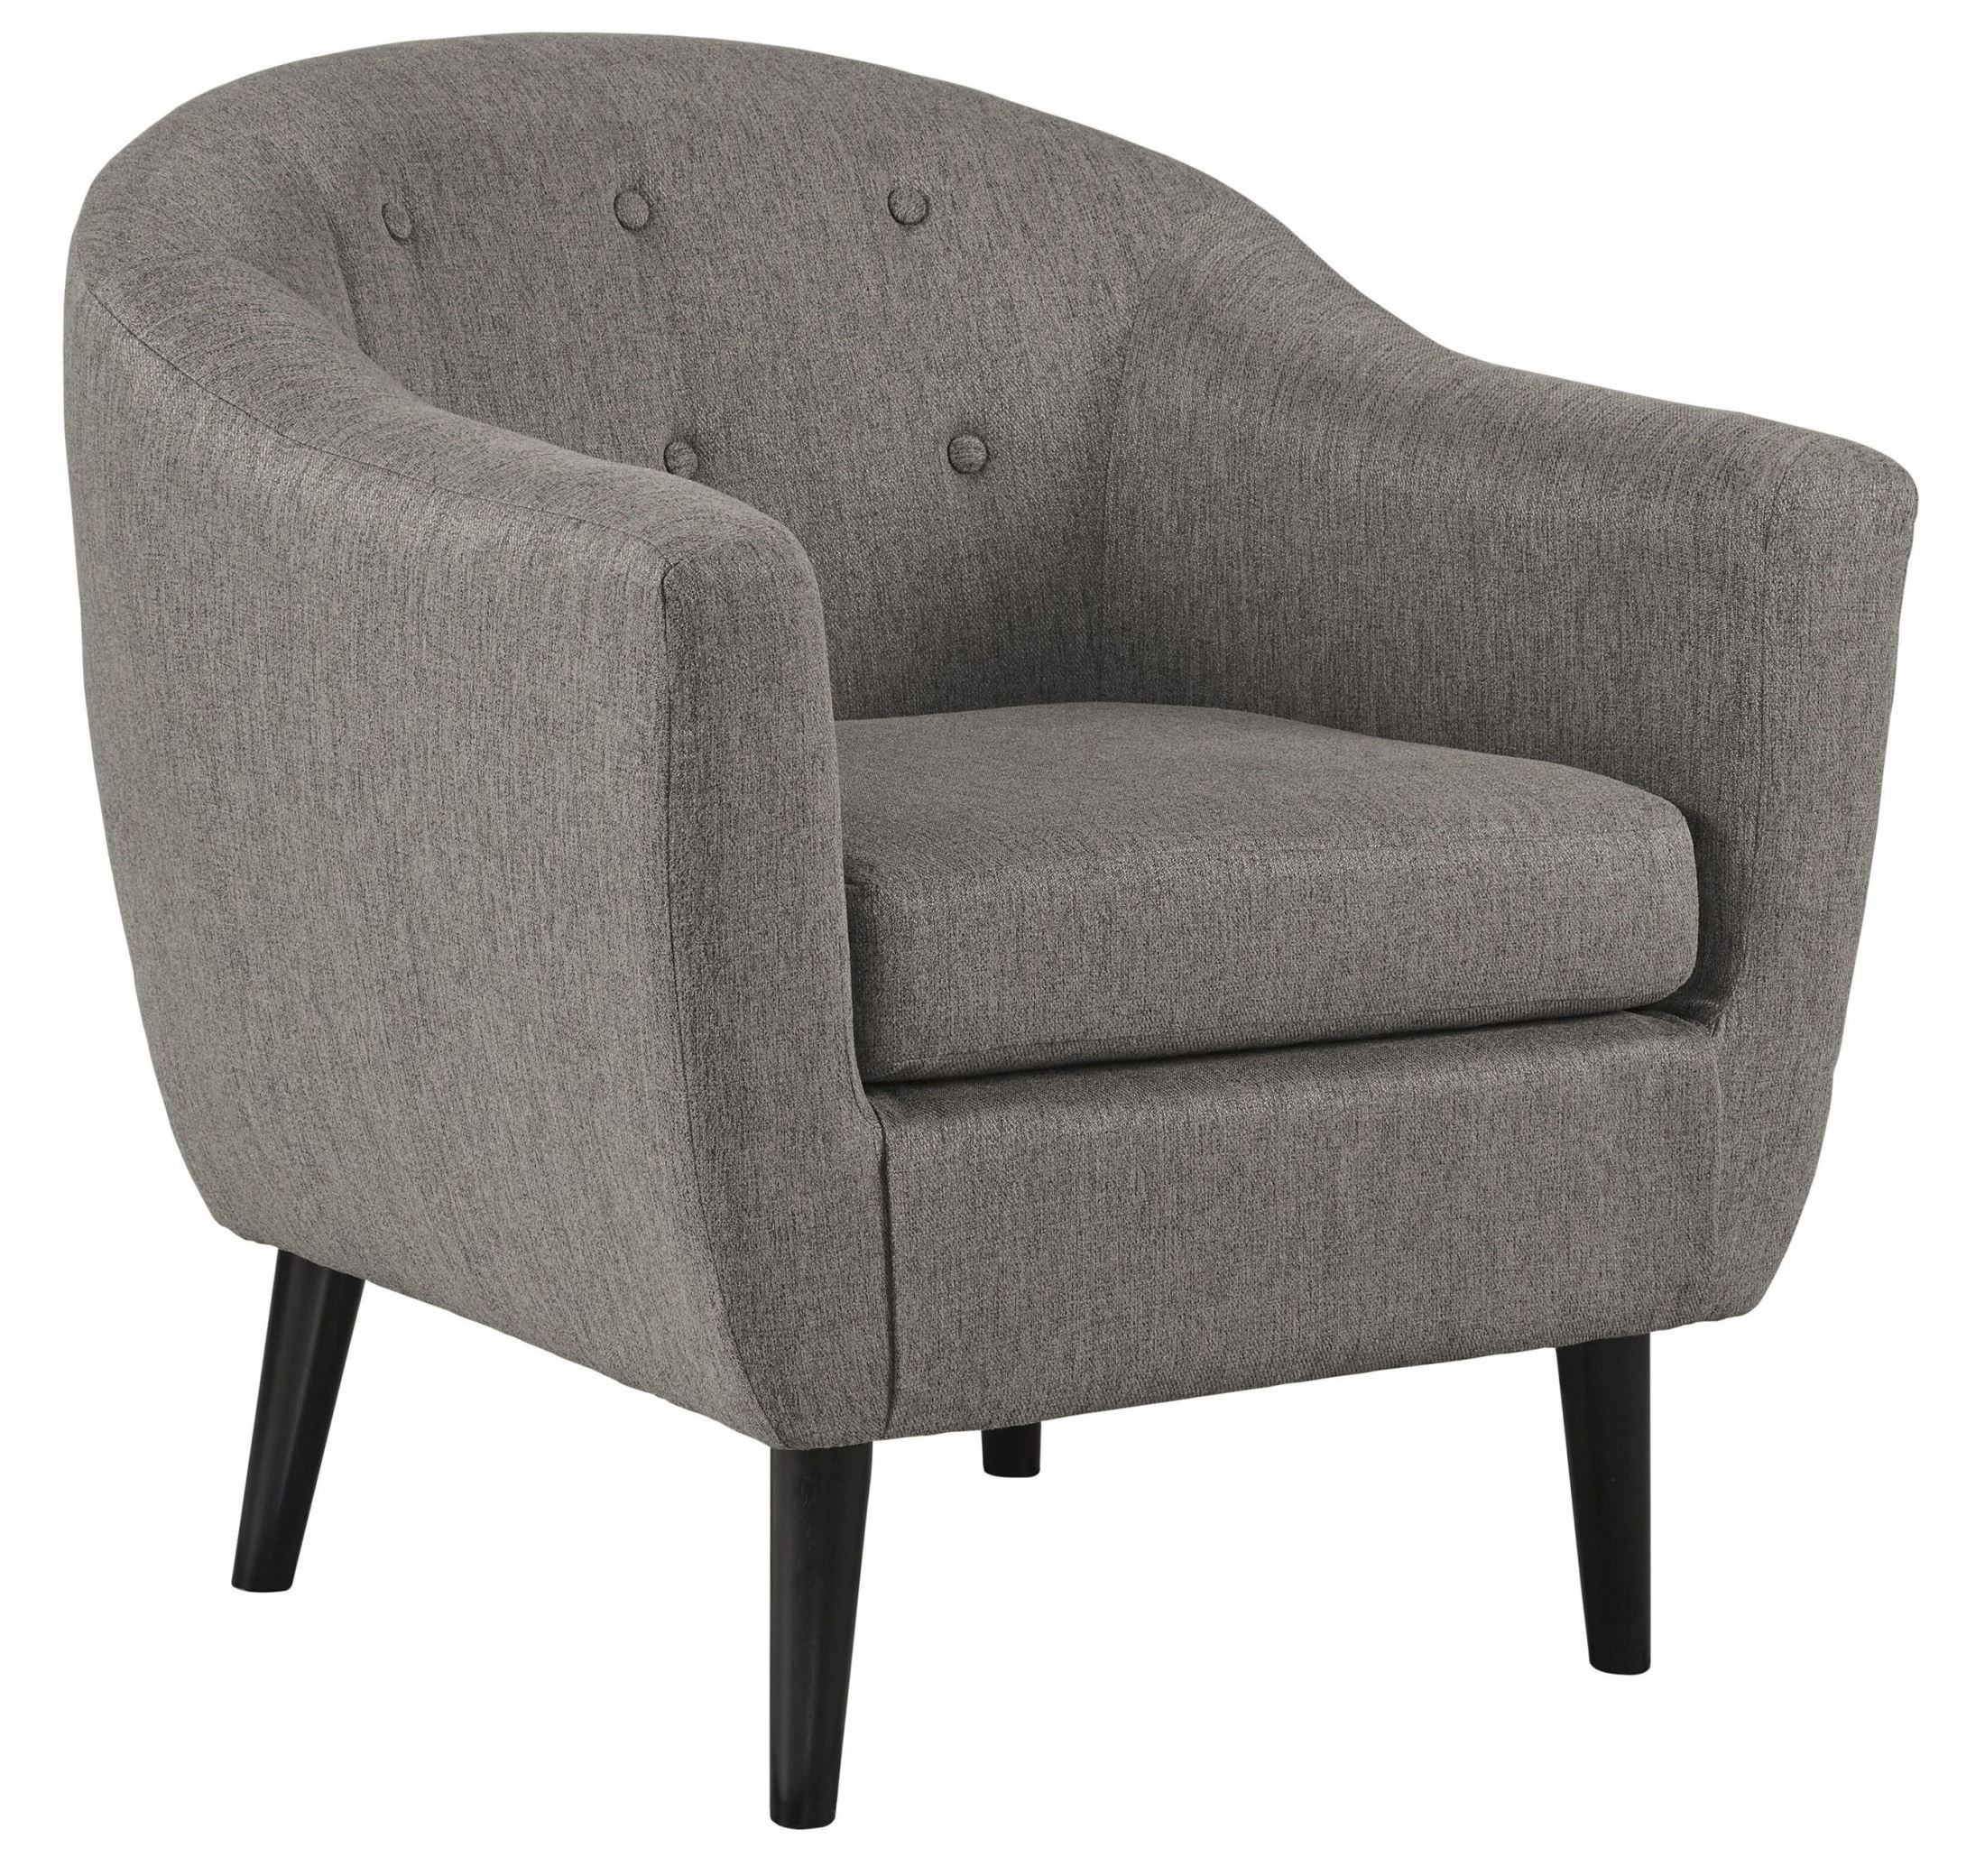 Klorey Charcoal Accent Chair From Ashley 3620821